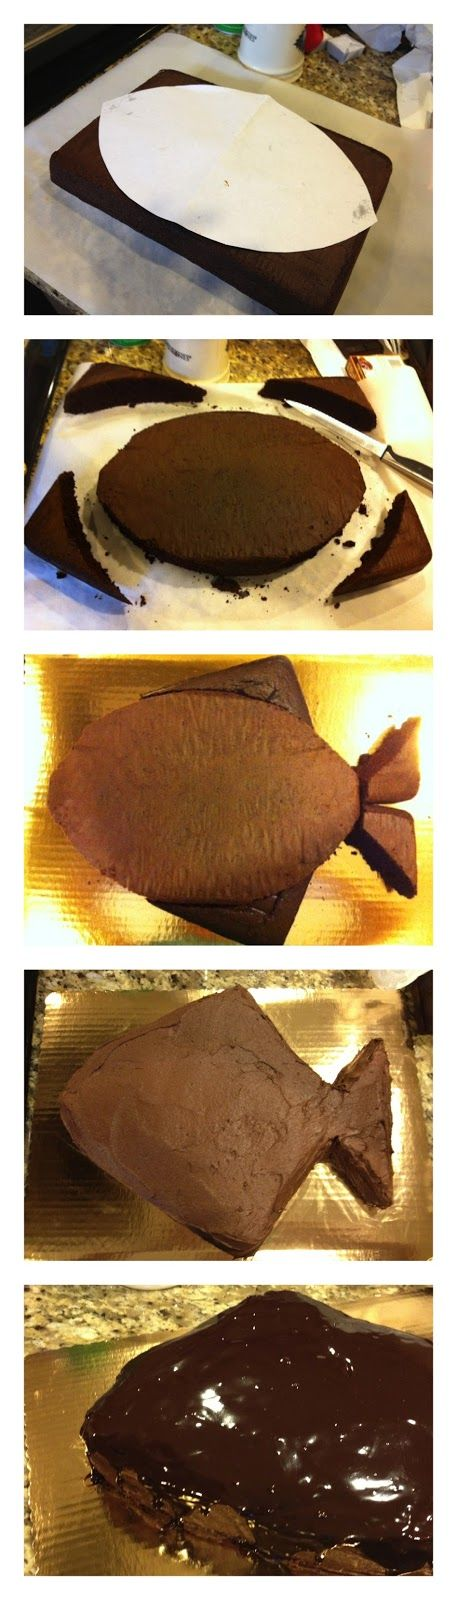 Fish cake create share repeat blog mels pinterest for Fish shaped cake